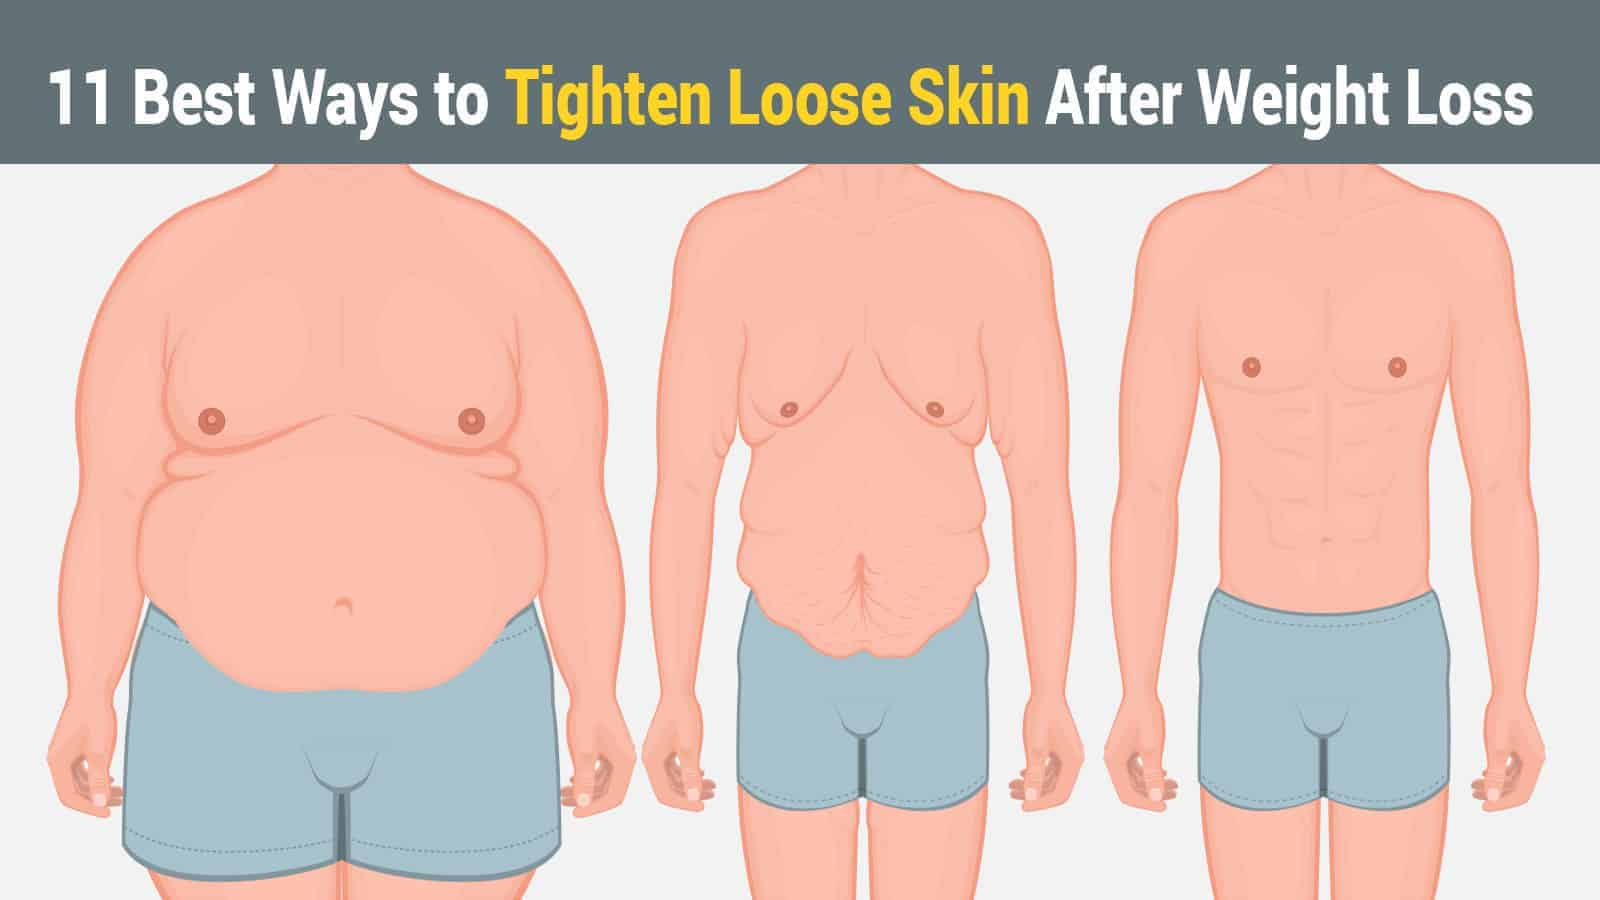 Loss weight tighten after skin How to